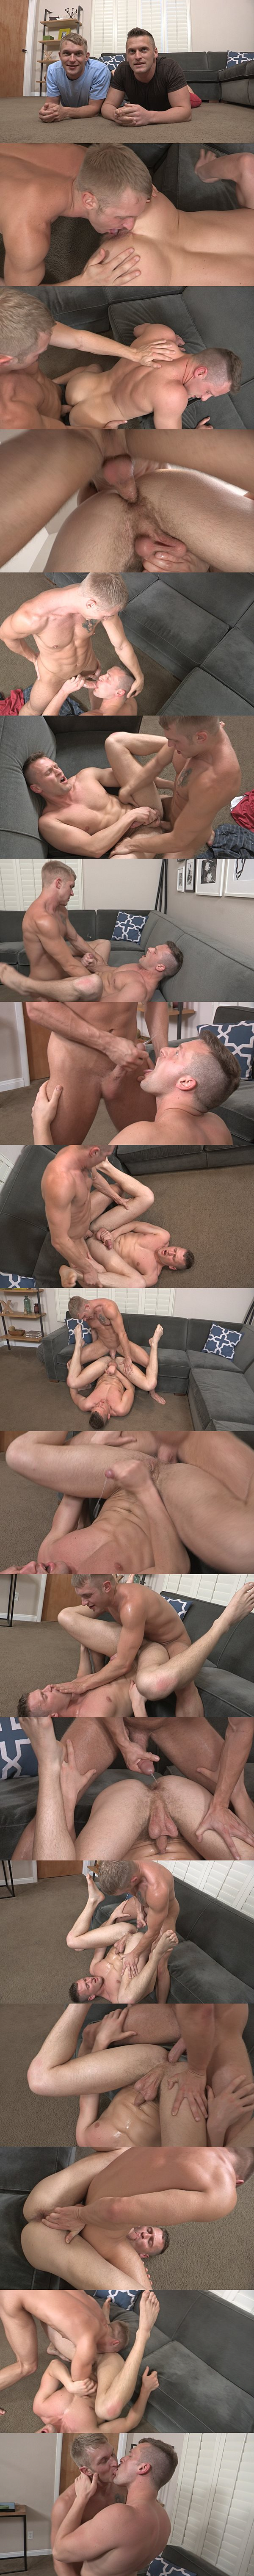 Pete barebacks hot newcomer Brendan's virgin ass before he fucks two hot loads out of Brendan and breeds Brendan at Seancody 02